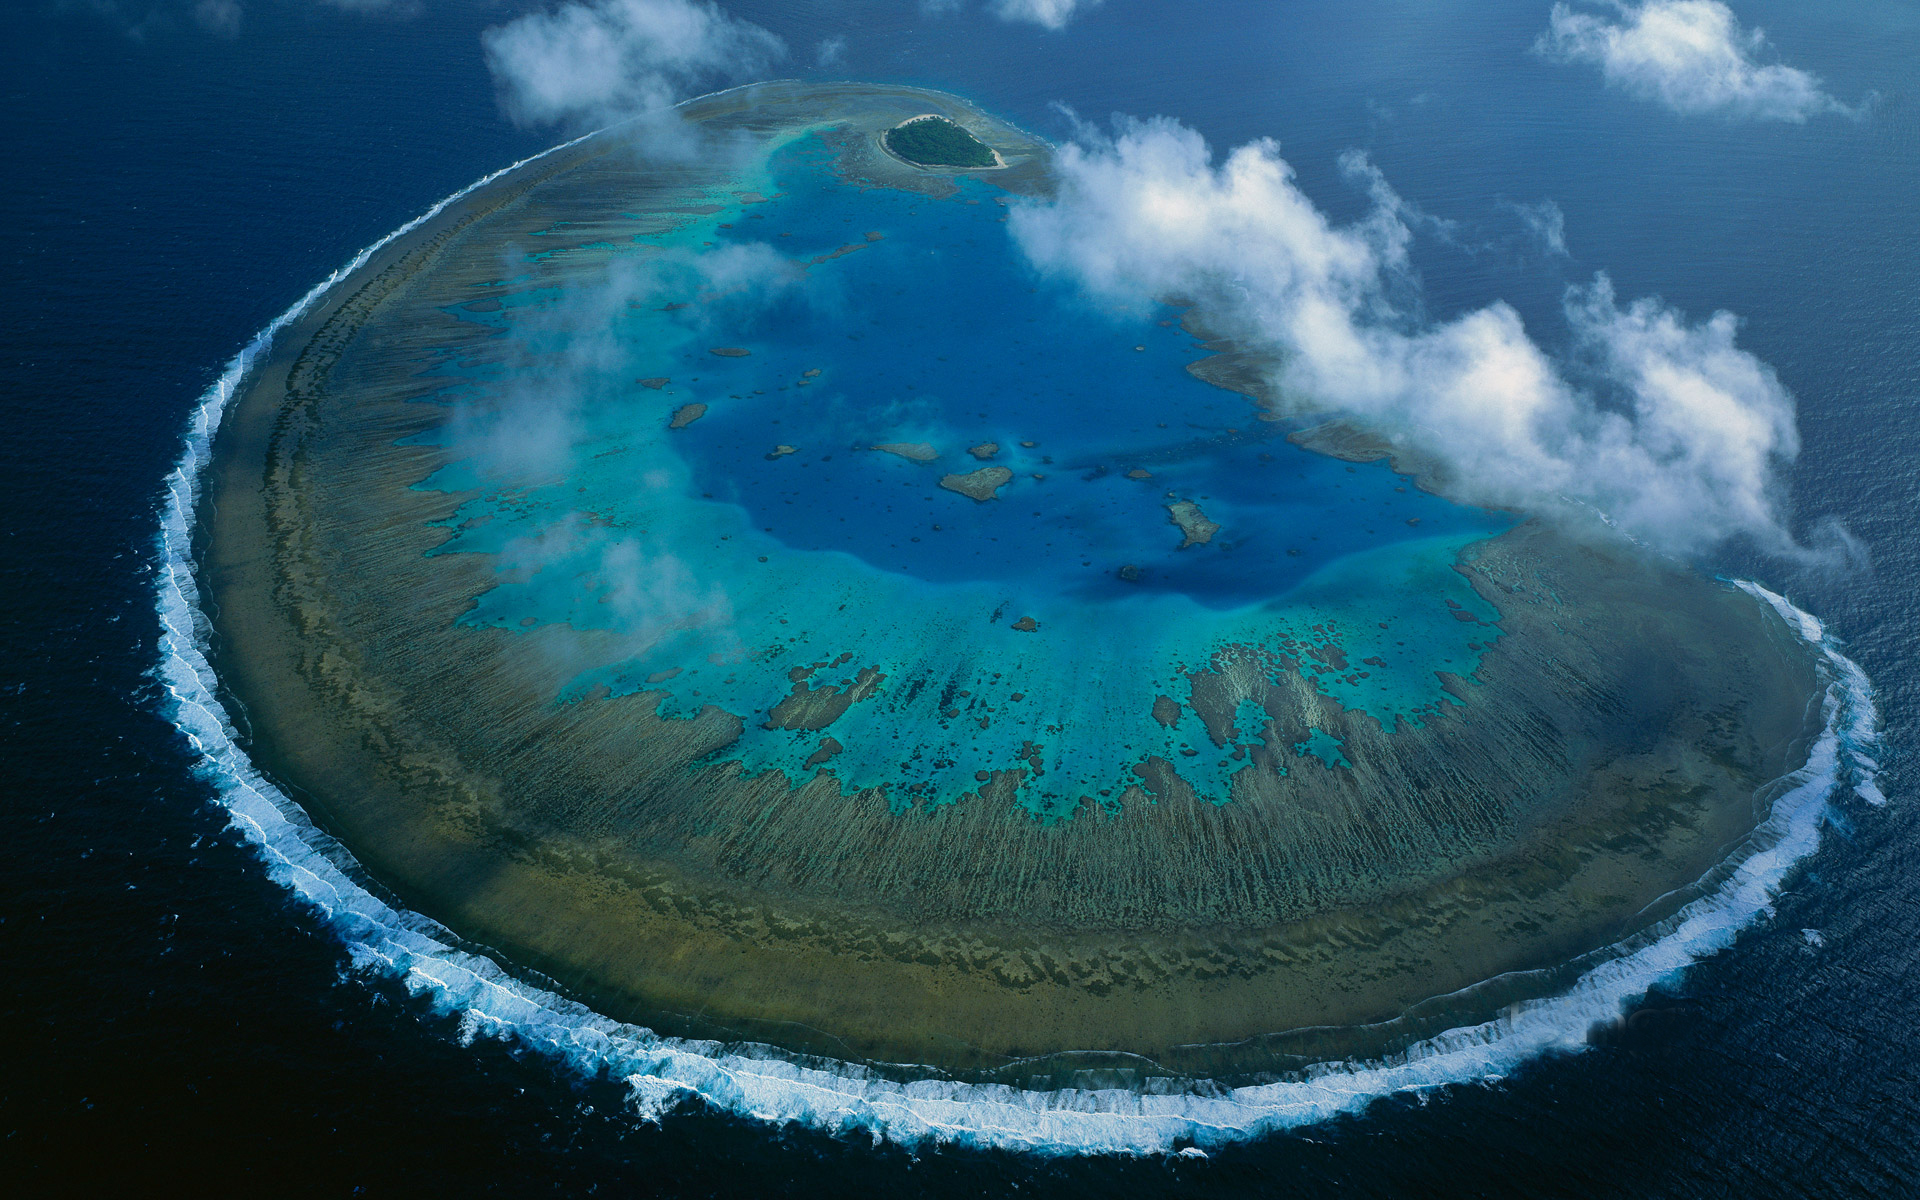 Lady Musgrave Island coral atoll in Capricorn-Bunker group, Grea